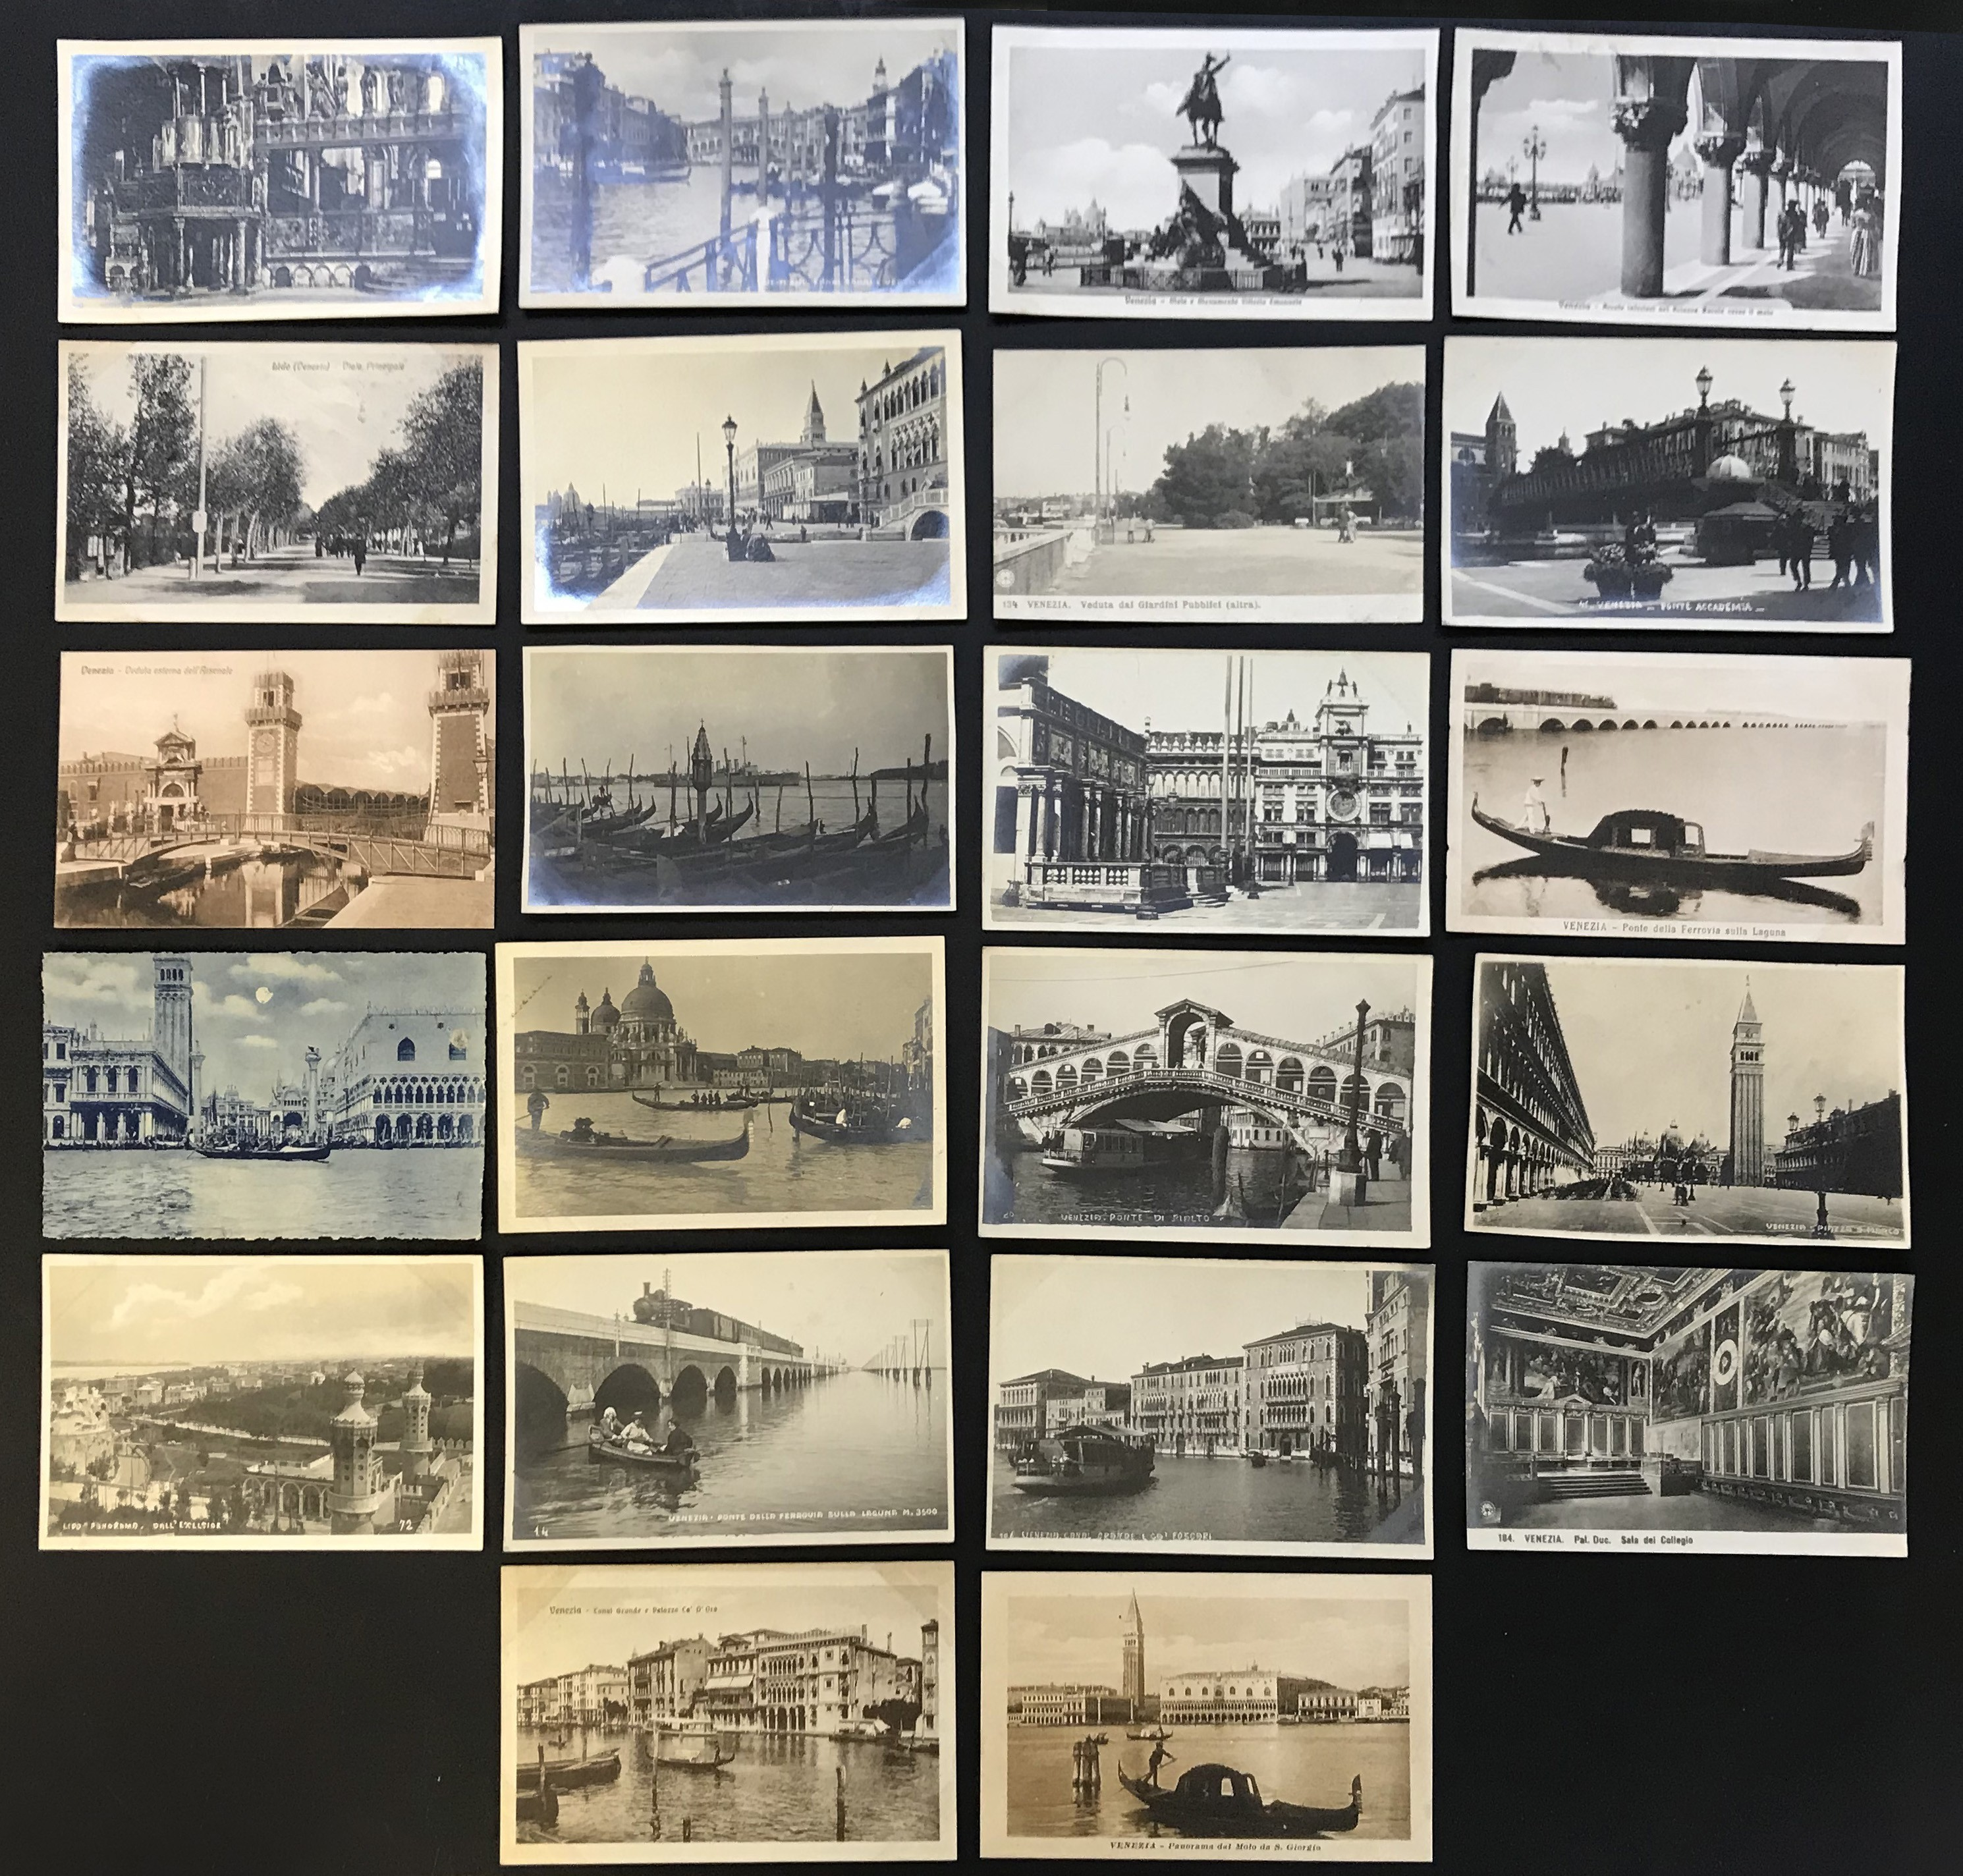 SELECTION OF VENICE RELATED POSTCARDS - Image 17 of 53